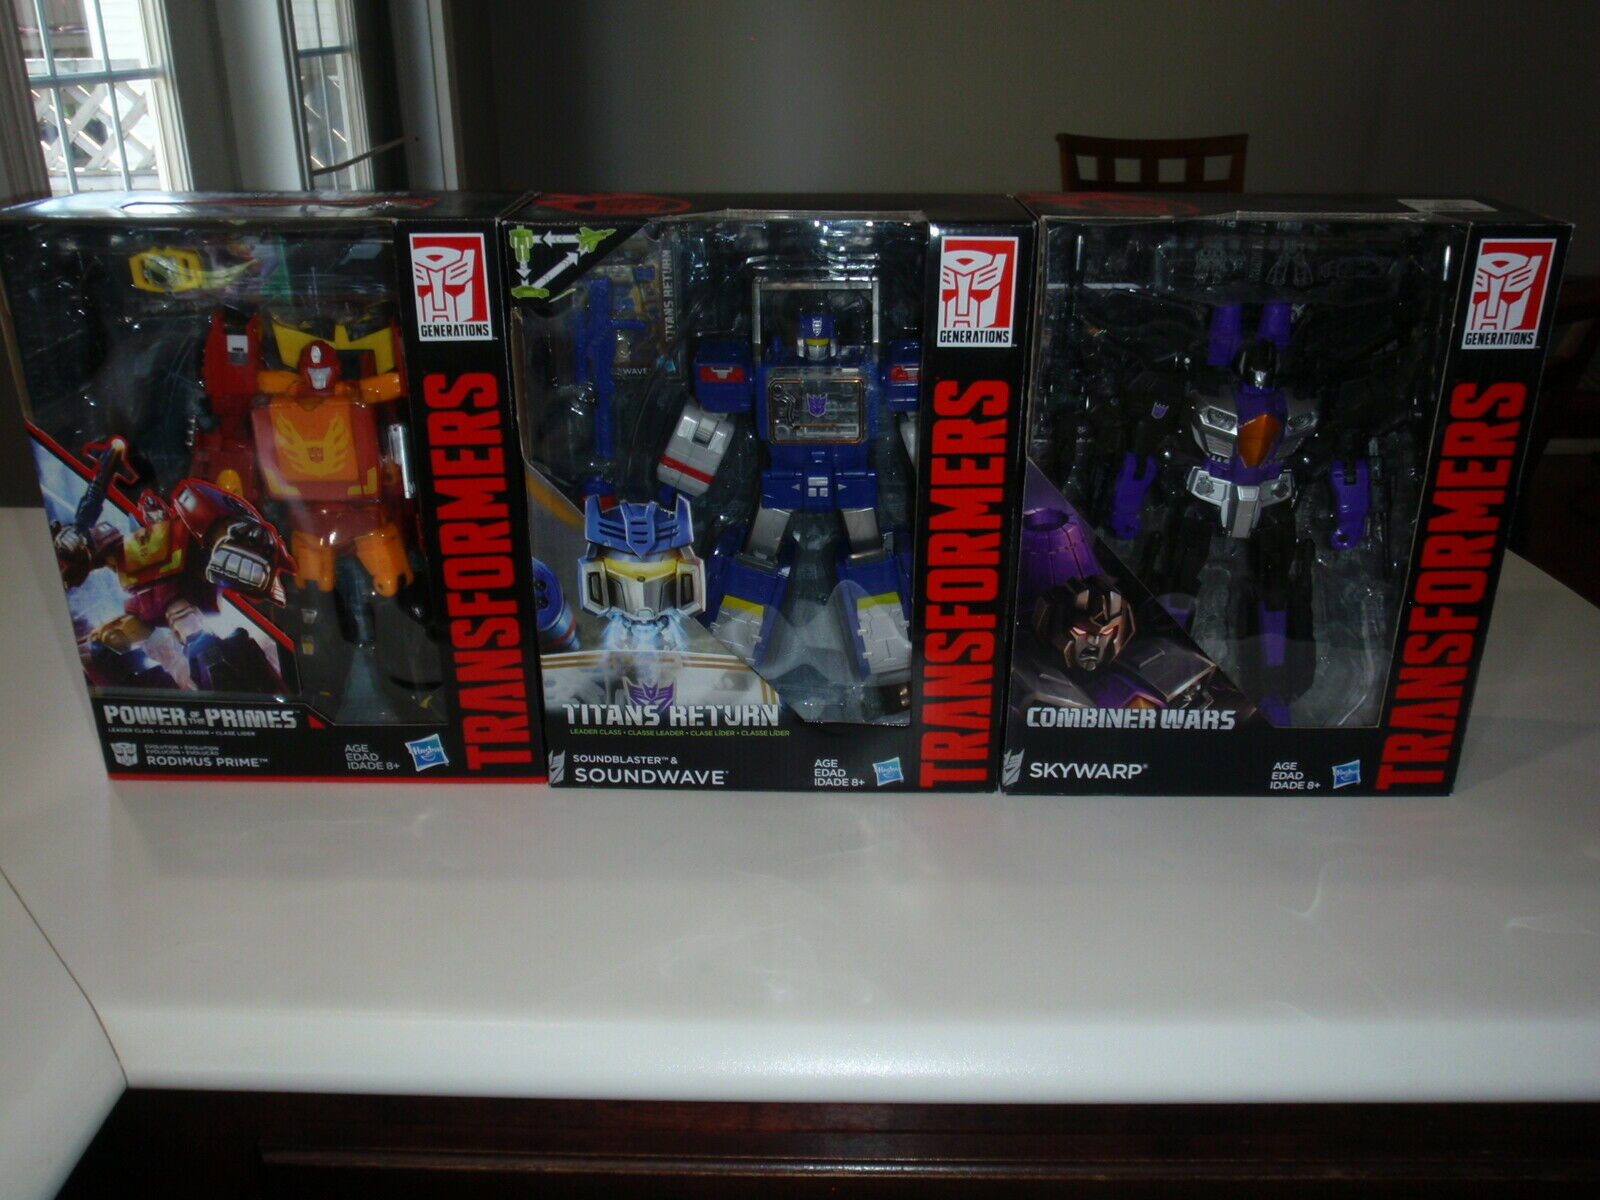 Transformers Titans Return Primes Kriege Soundwave Rodimus Prime Skywarp